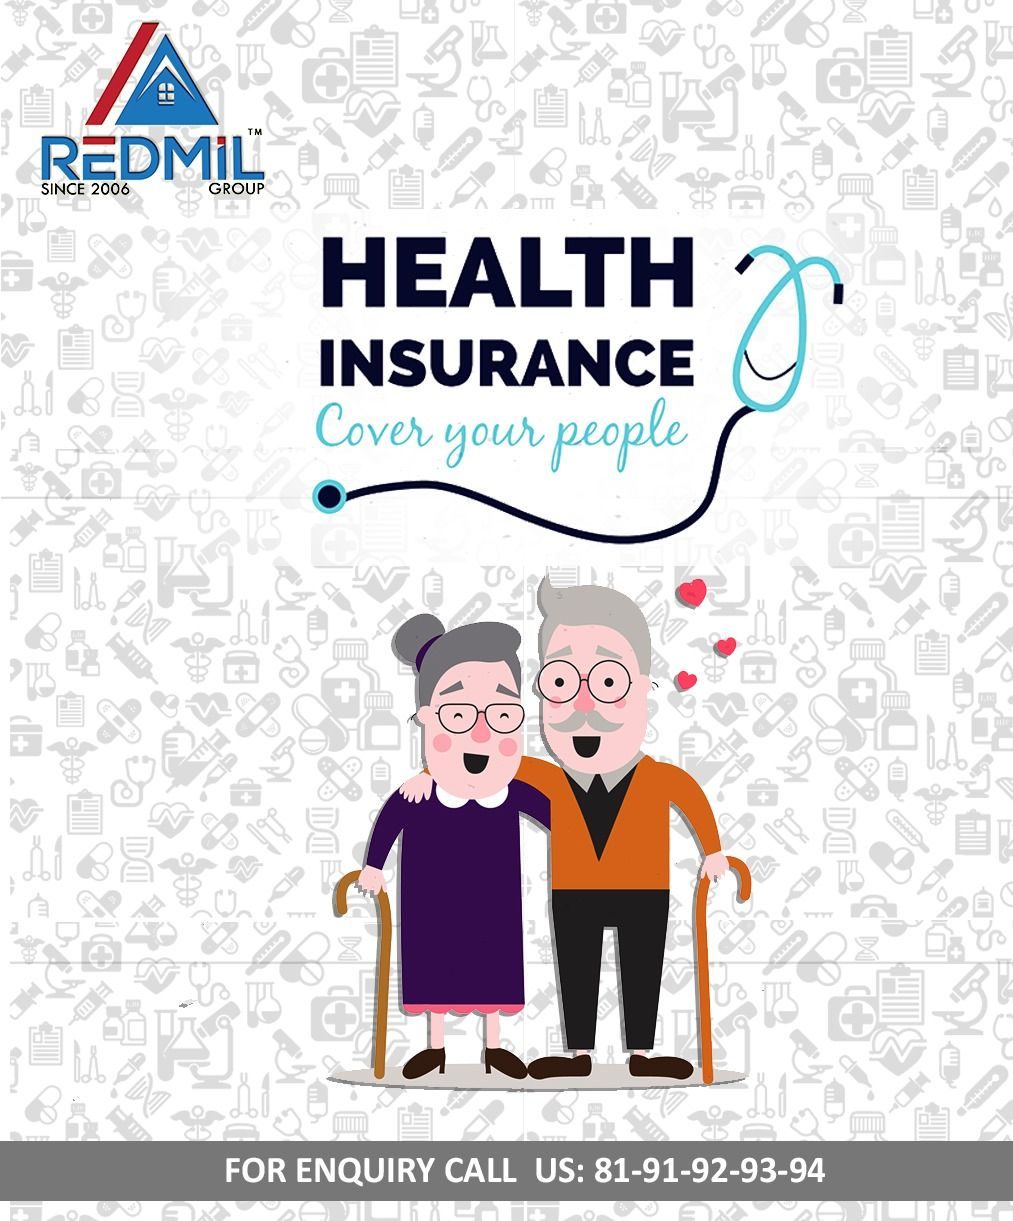 Compare Health Insurance Plans From Top Health Insurance Companies